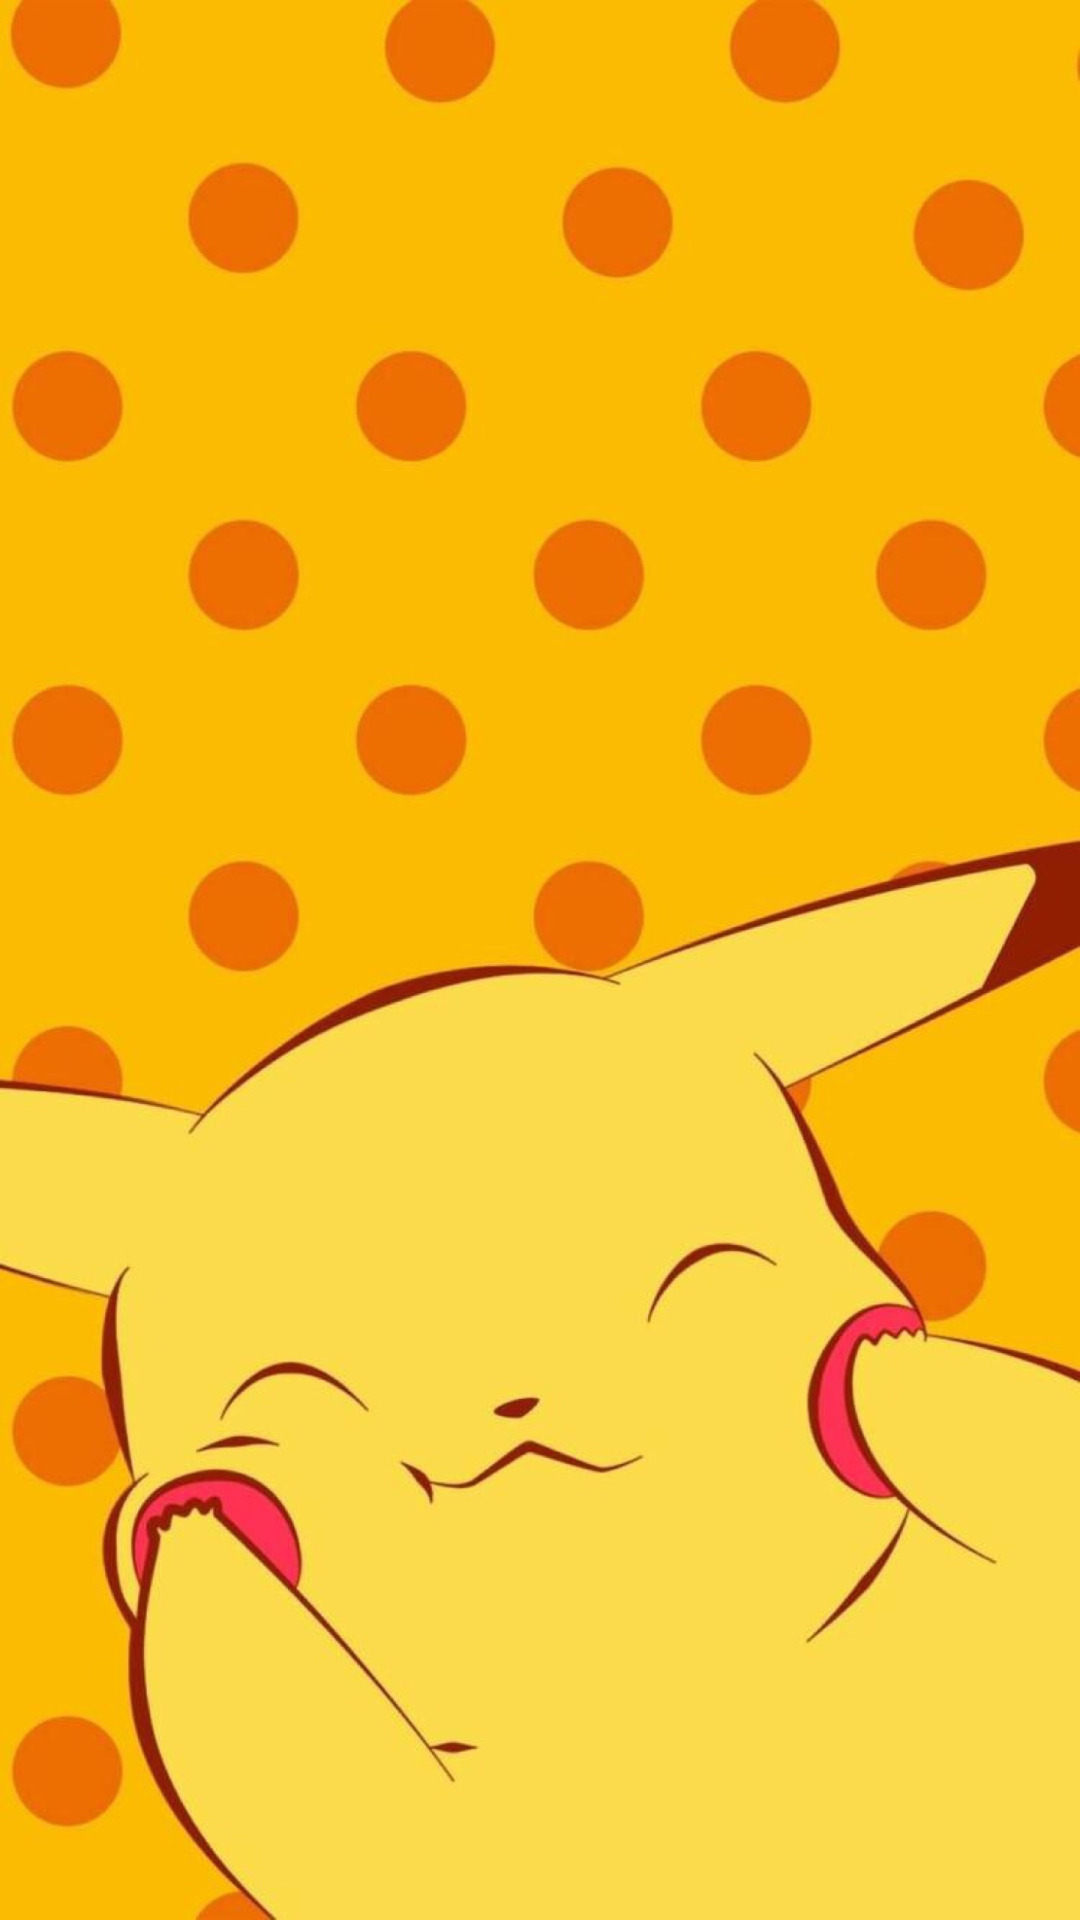 Cute Cartoon Wallpapers For Mobile Hd Pokemon Iphone Wallpaper Pixelstalk Net